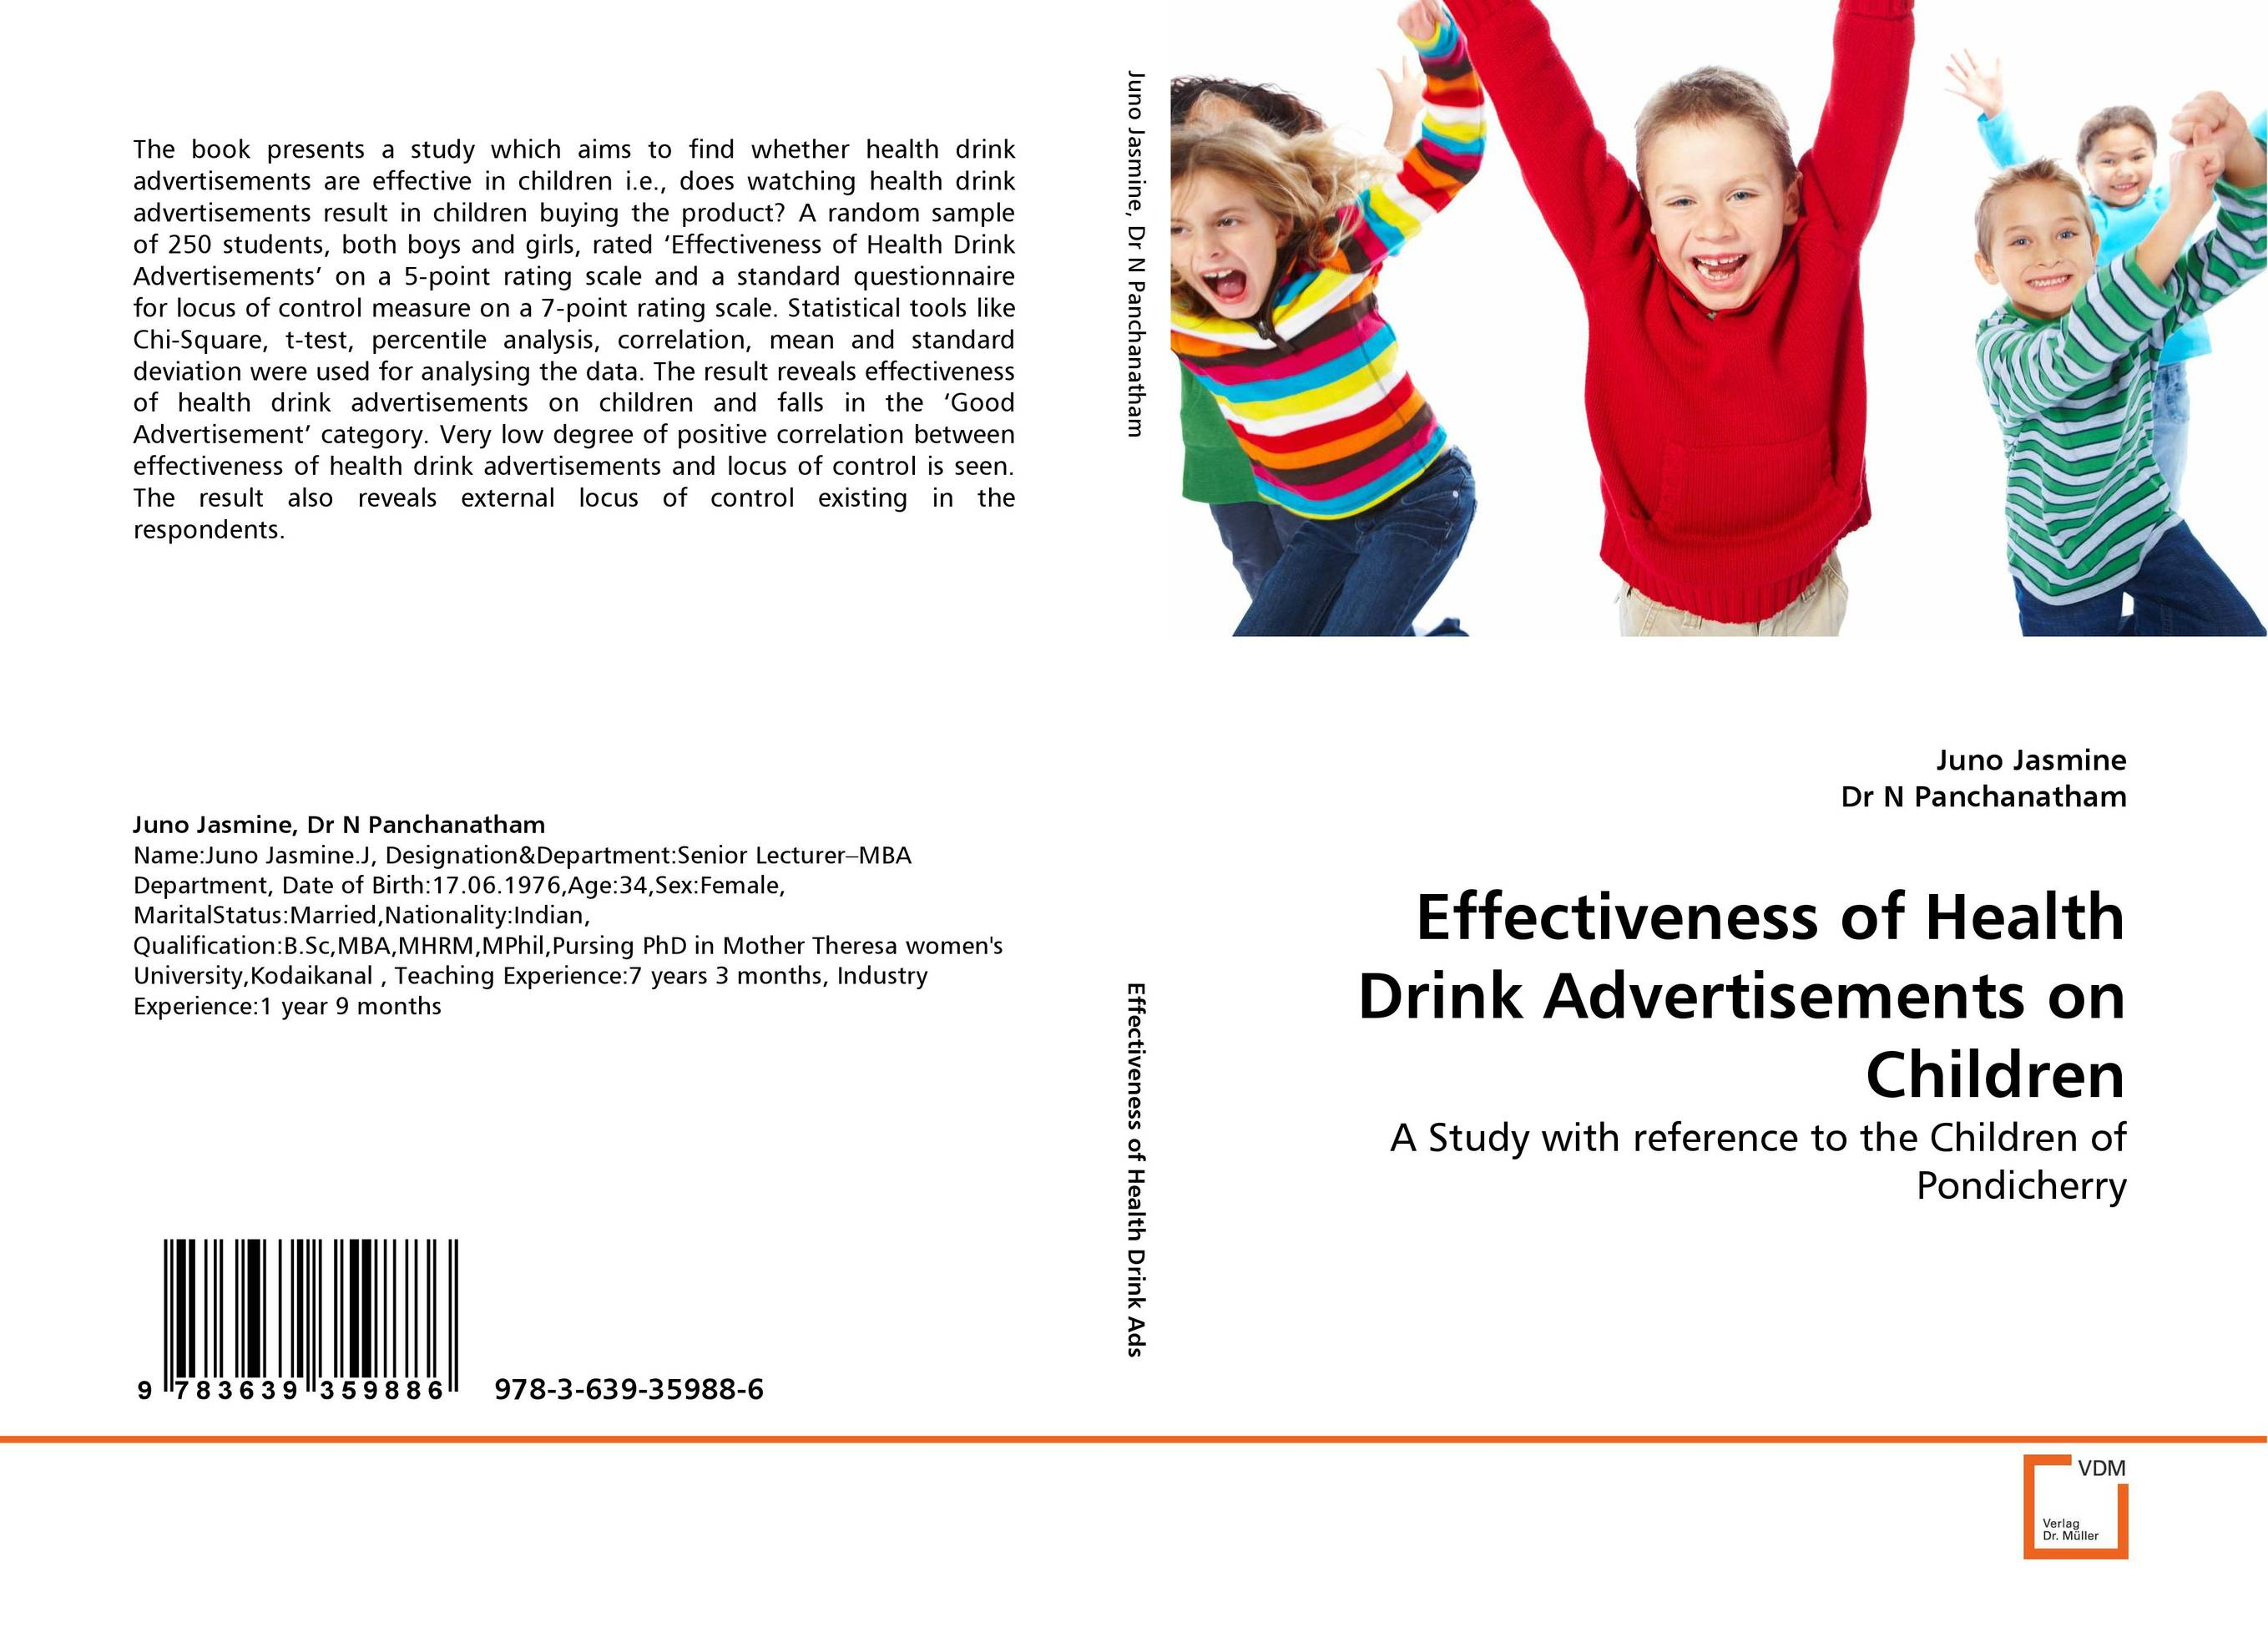 Effectiveness of Health Drink Advertisements on Children